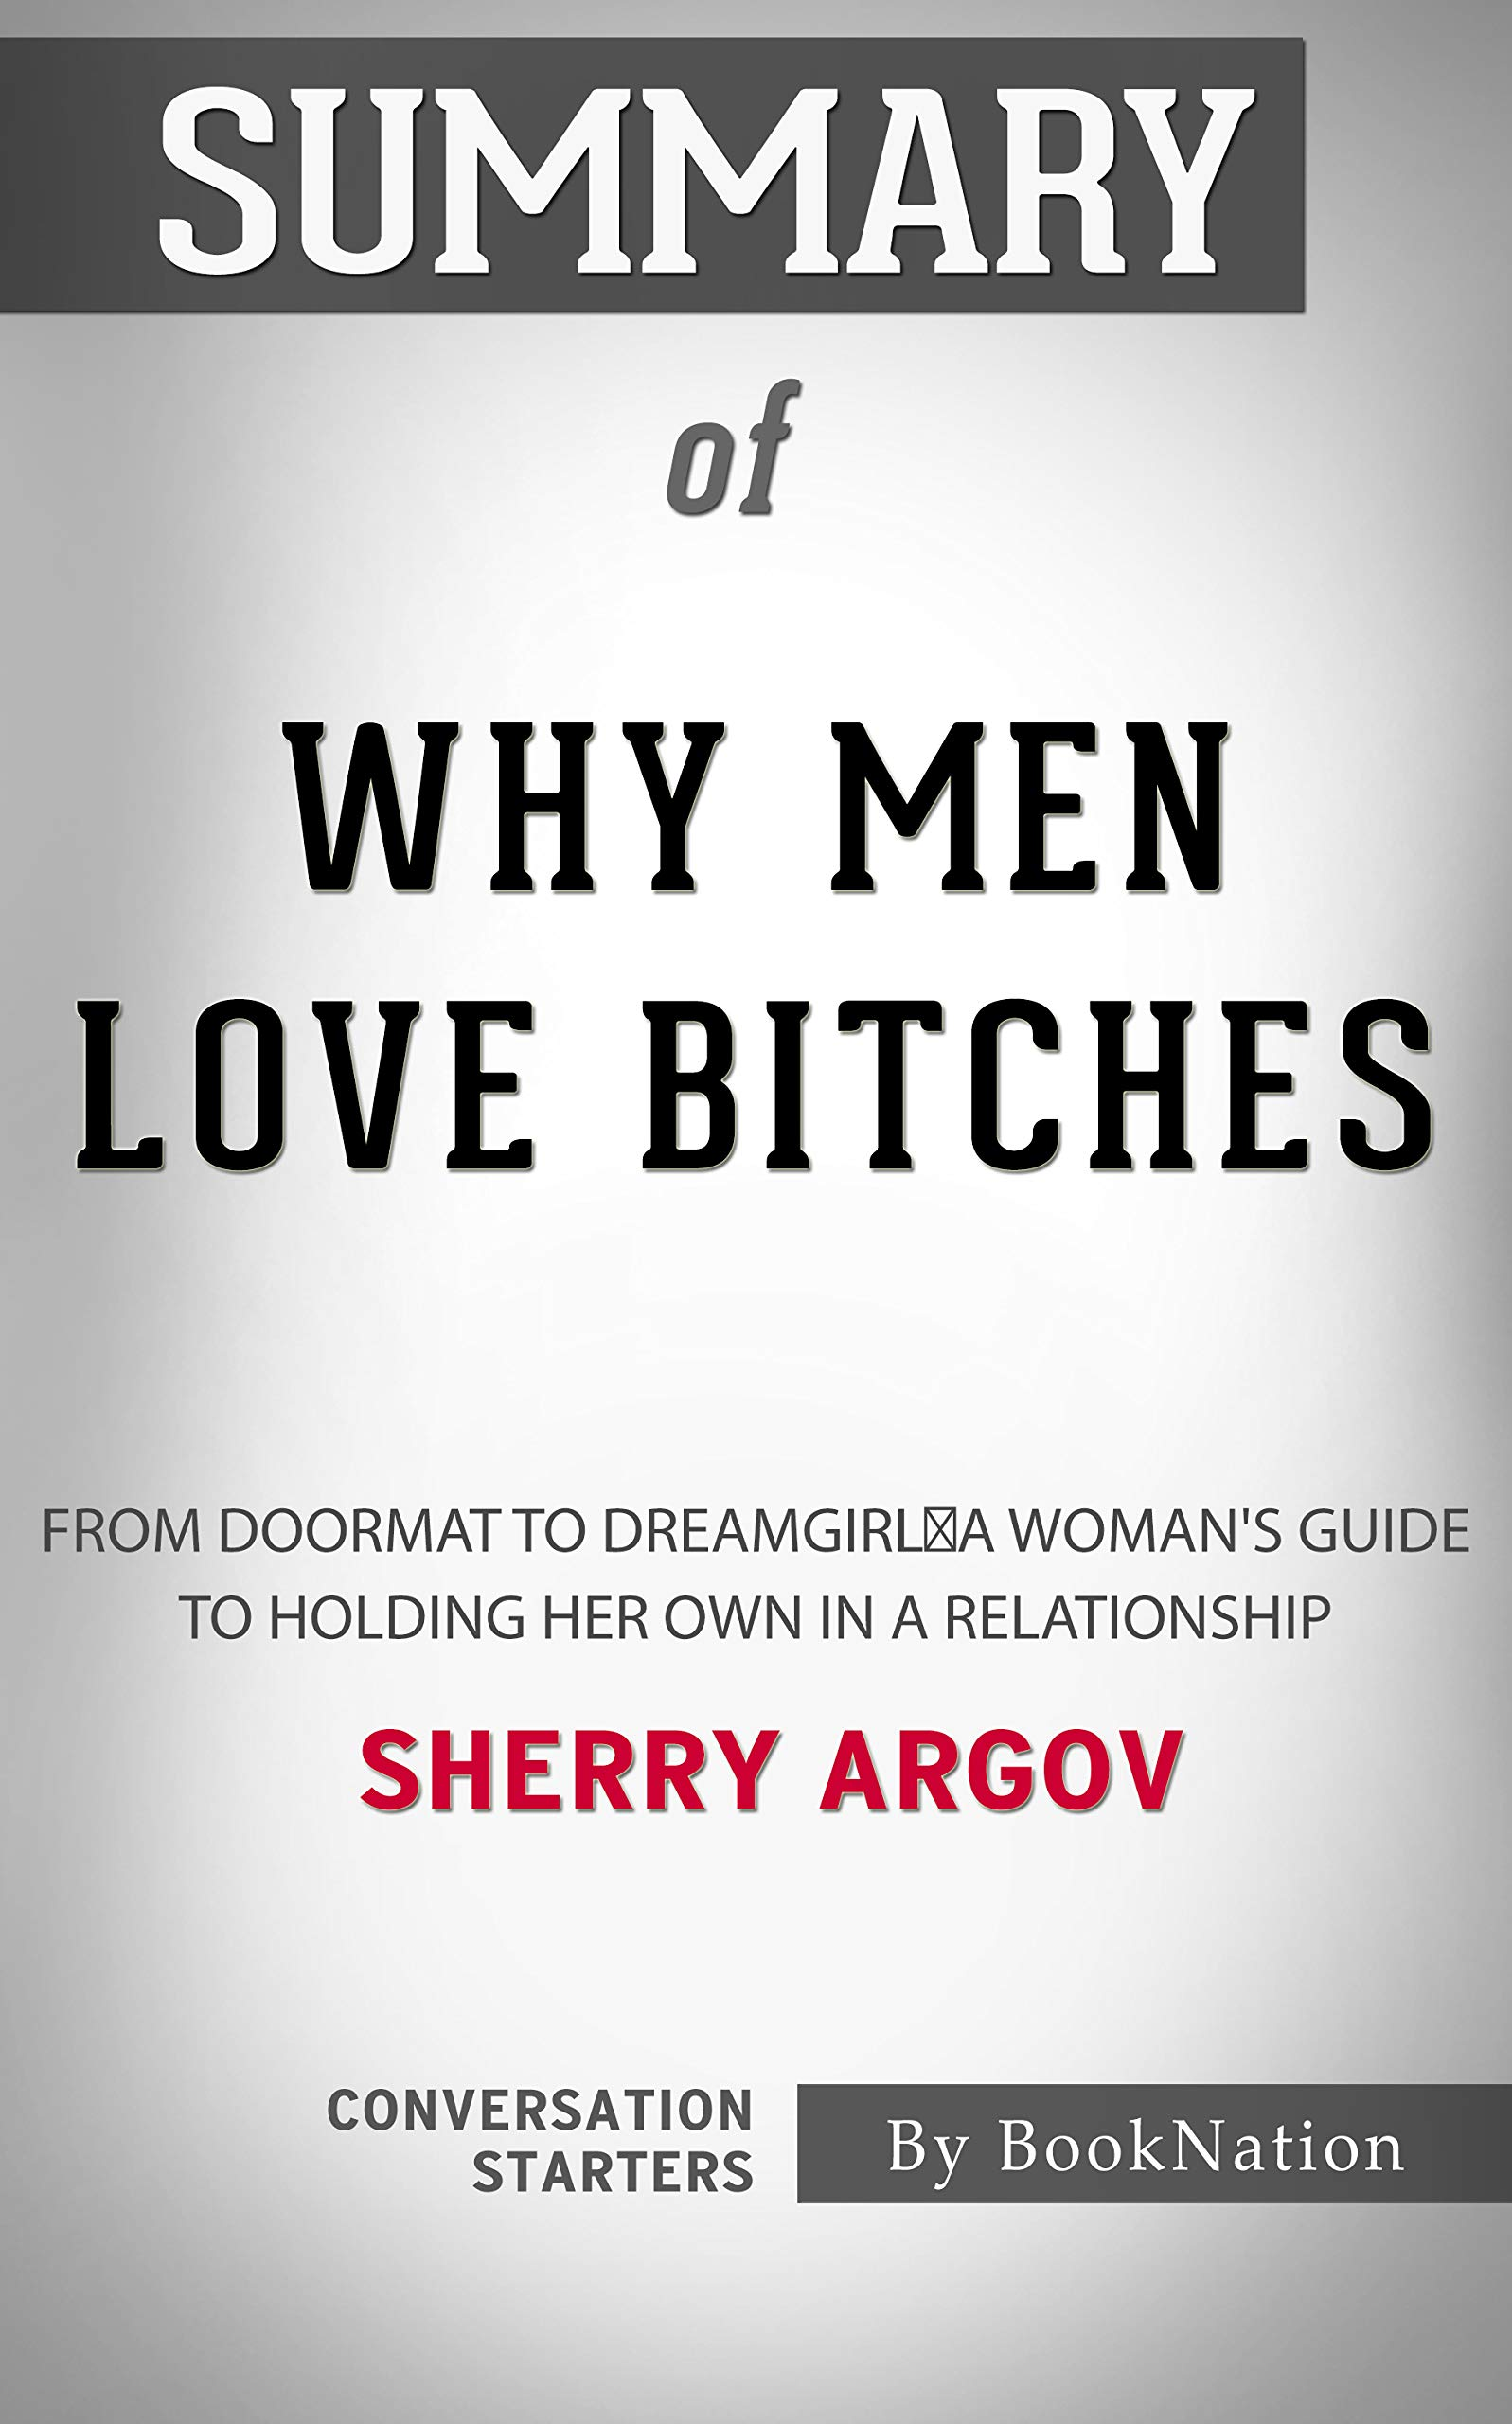 Summary of Why Men Love Bitches: From Doormat to Dreamgirl - A Woman's Guide to Holding Her Own in a Relationship: Conversation Starters